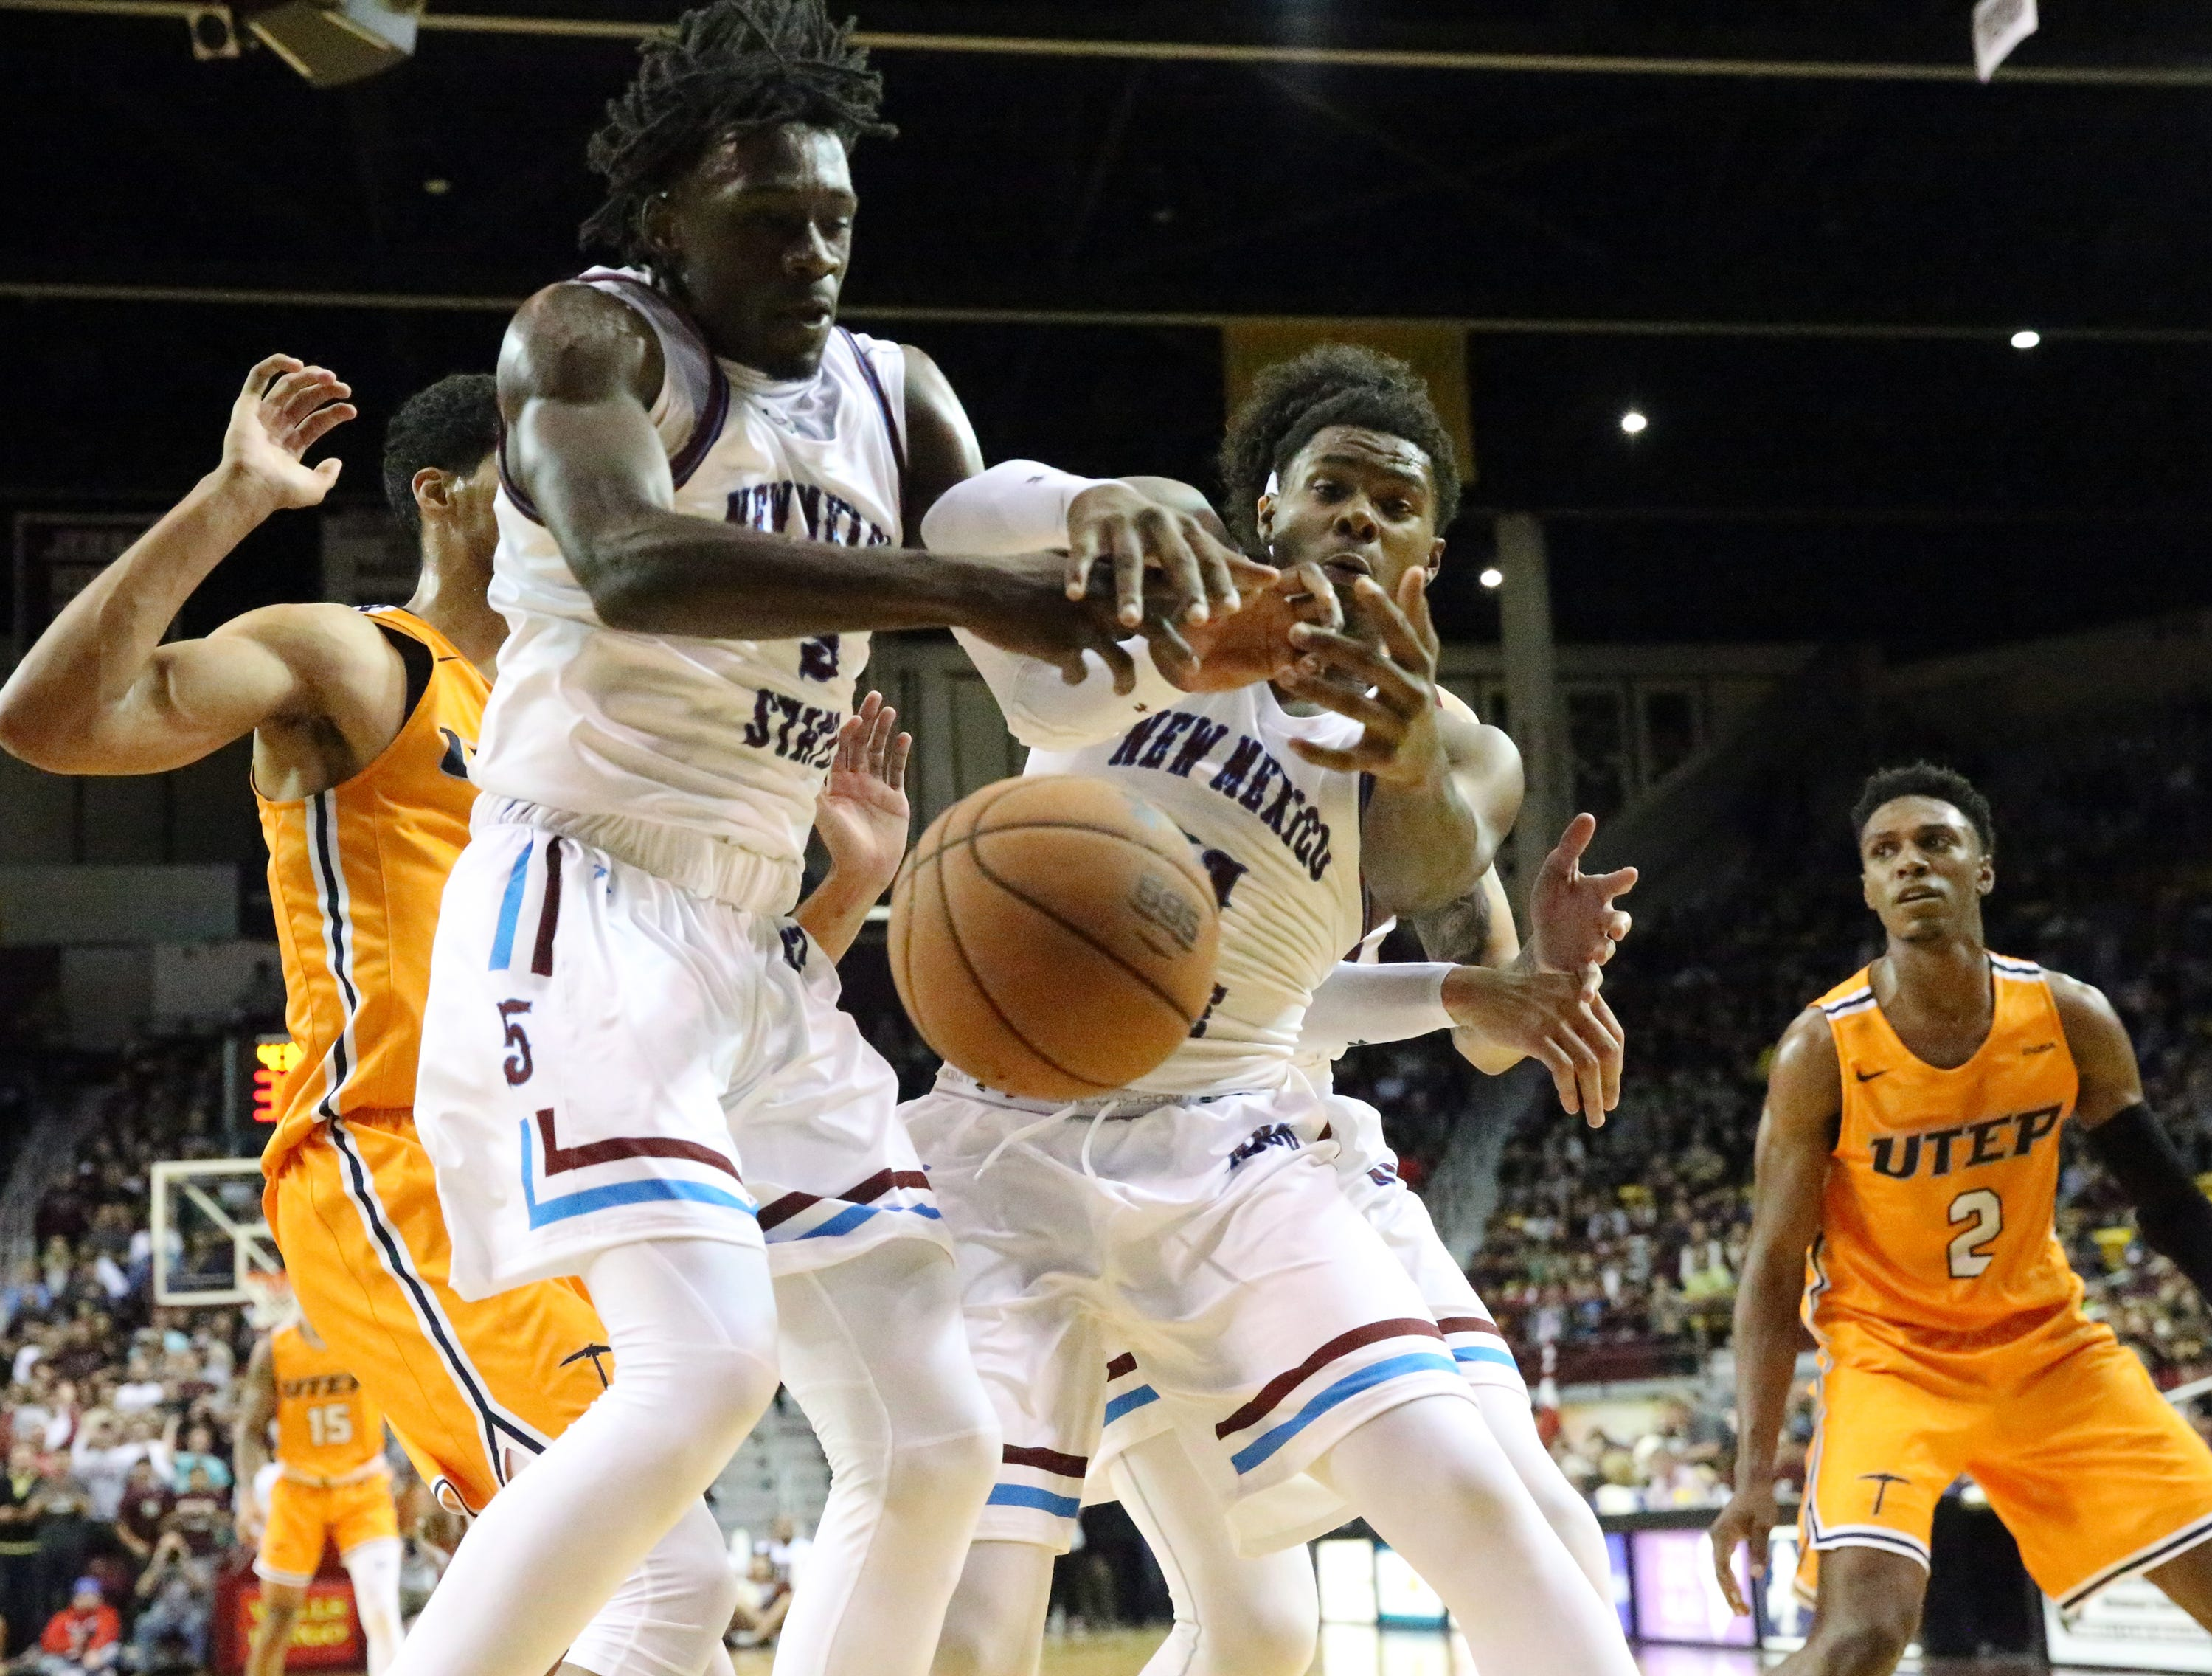 NMSU goes after a rebound under UTEP's basket Friday night.